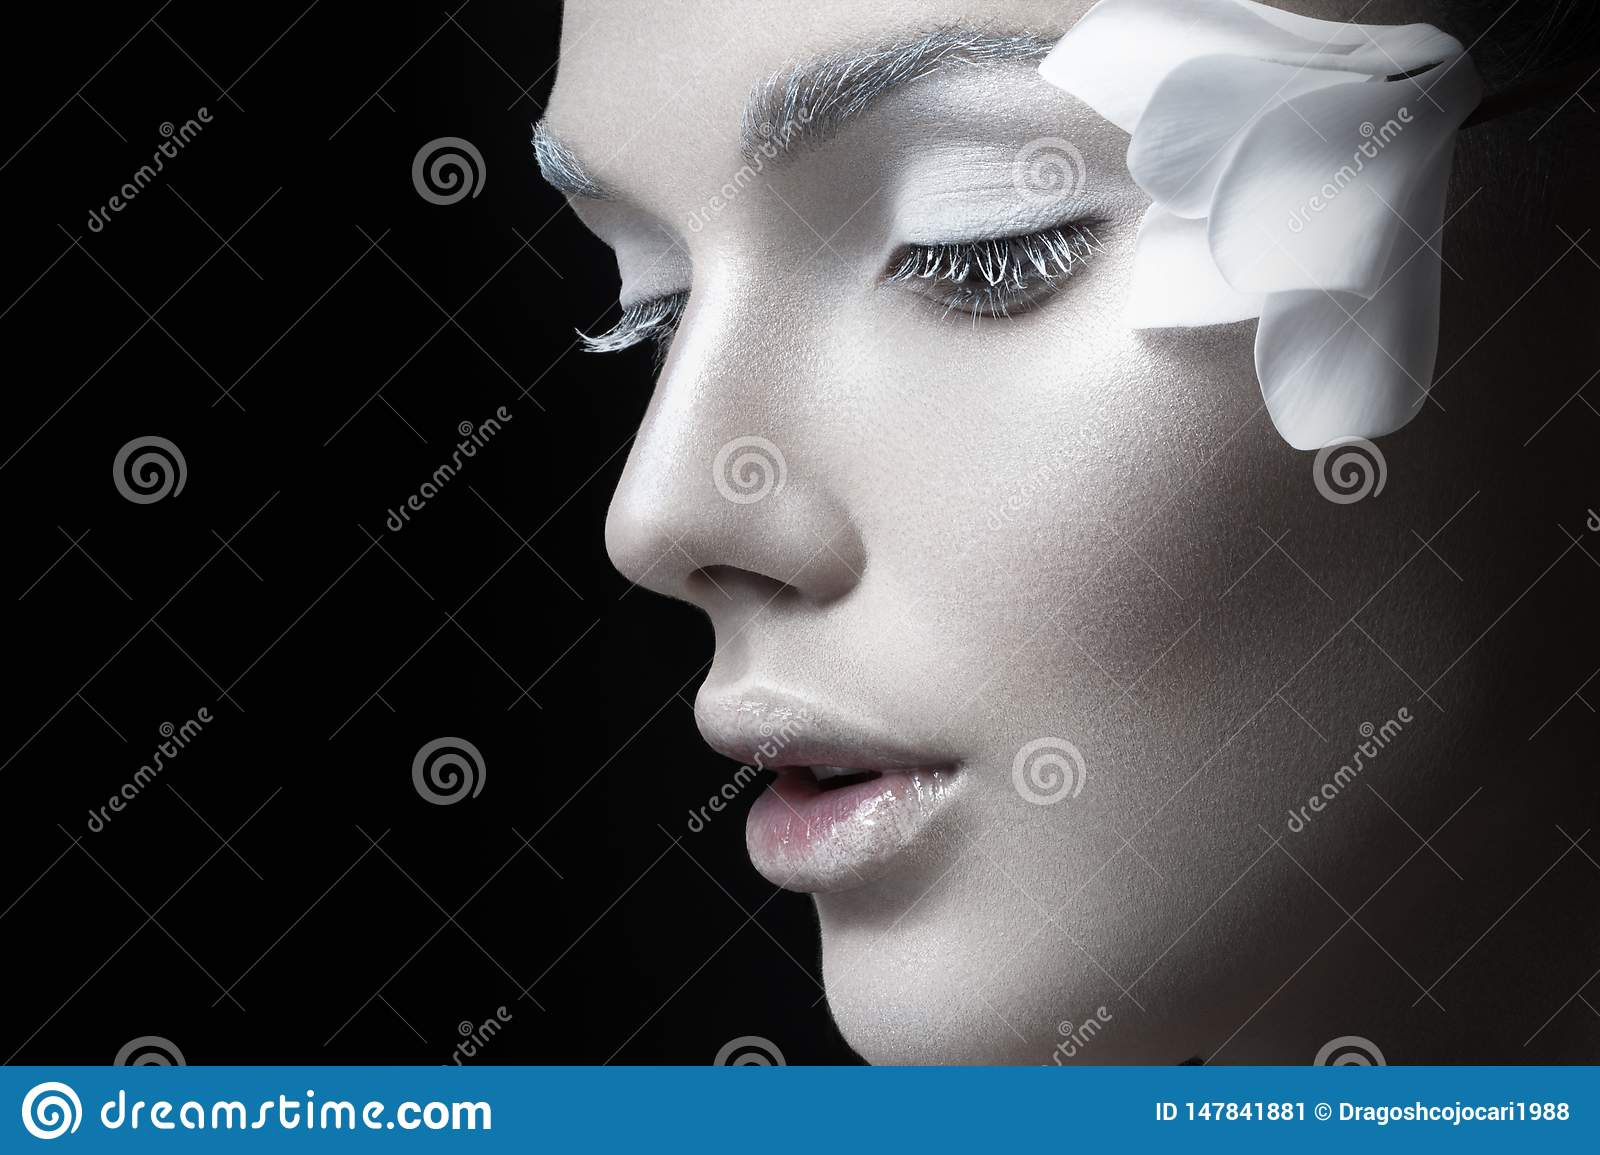 Beauty portrait., girl with white makeup, anf flowers near ear. Concept makeup, cosmetics,  on black background.